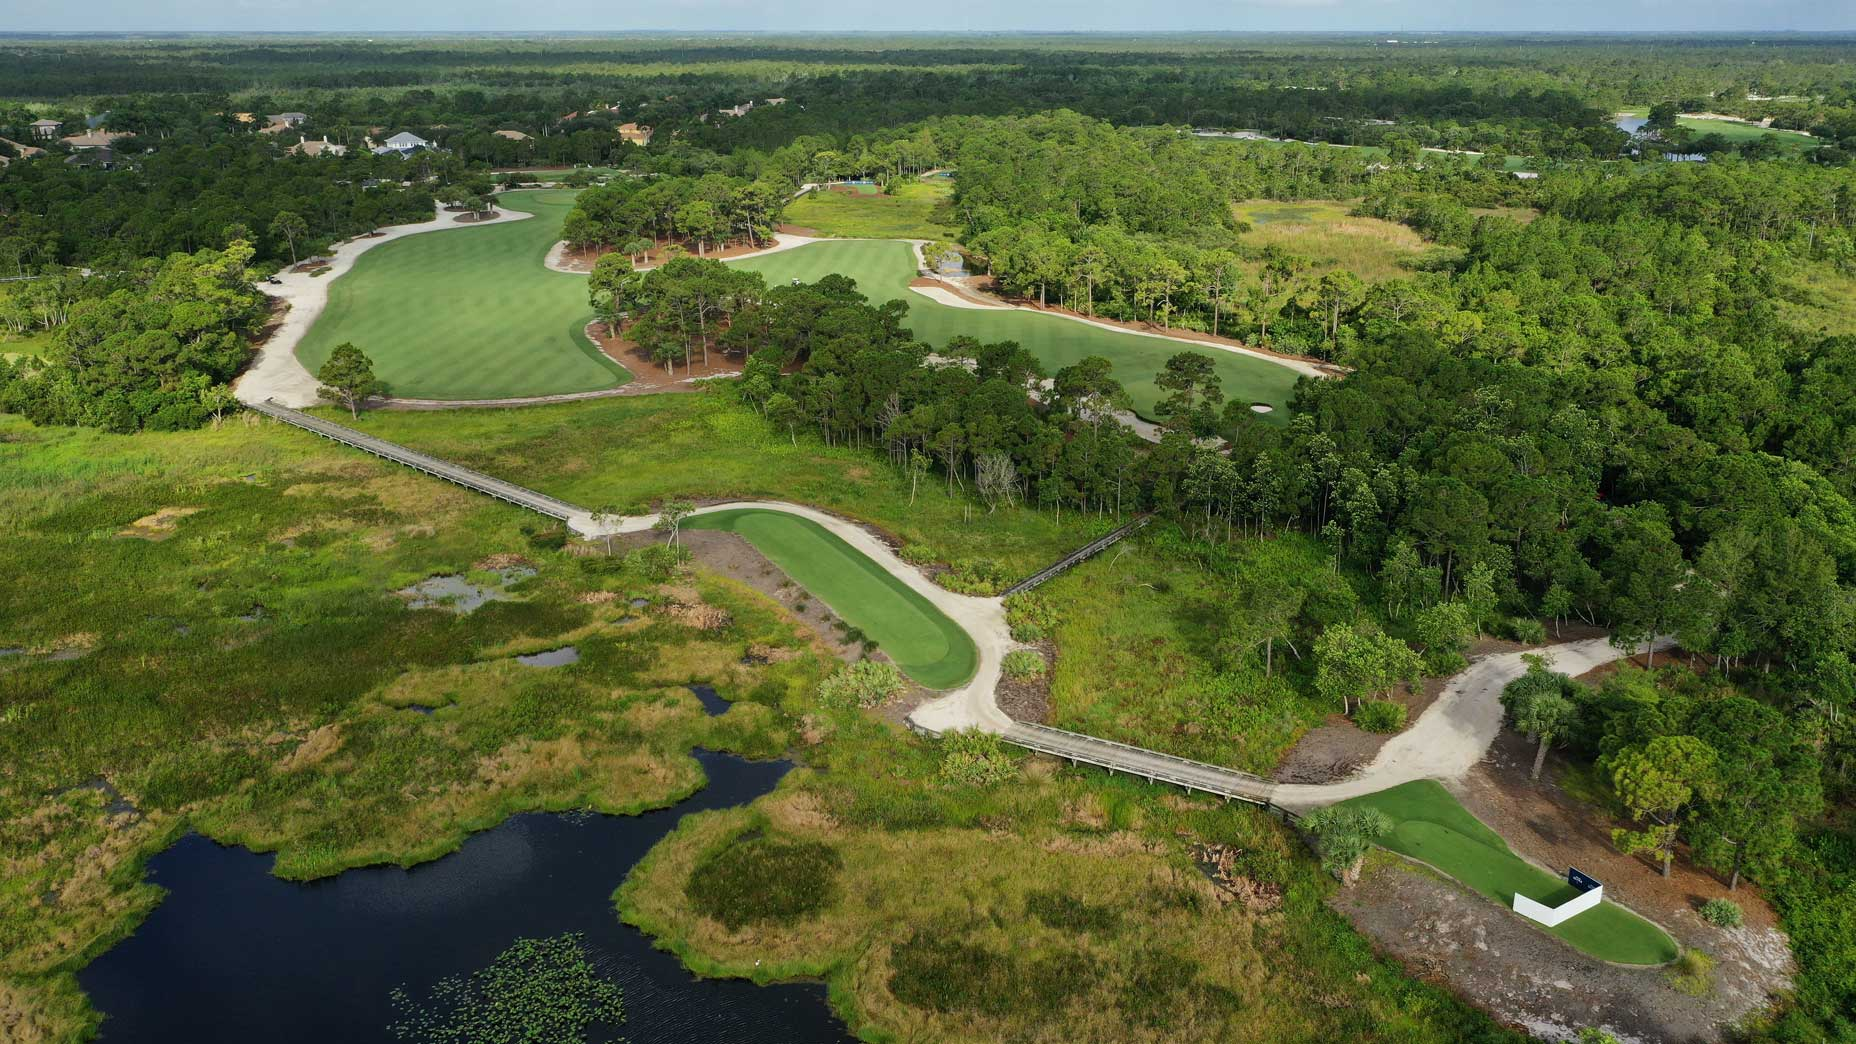 An aerial drone view of the 6th hole at Medalist Golf Club.